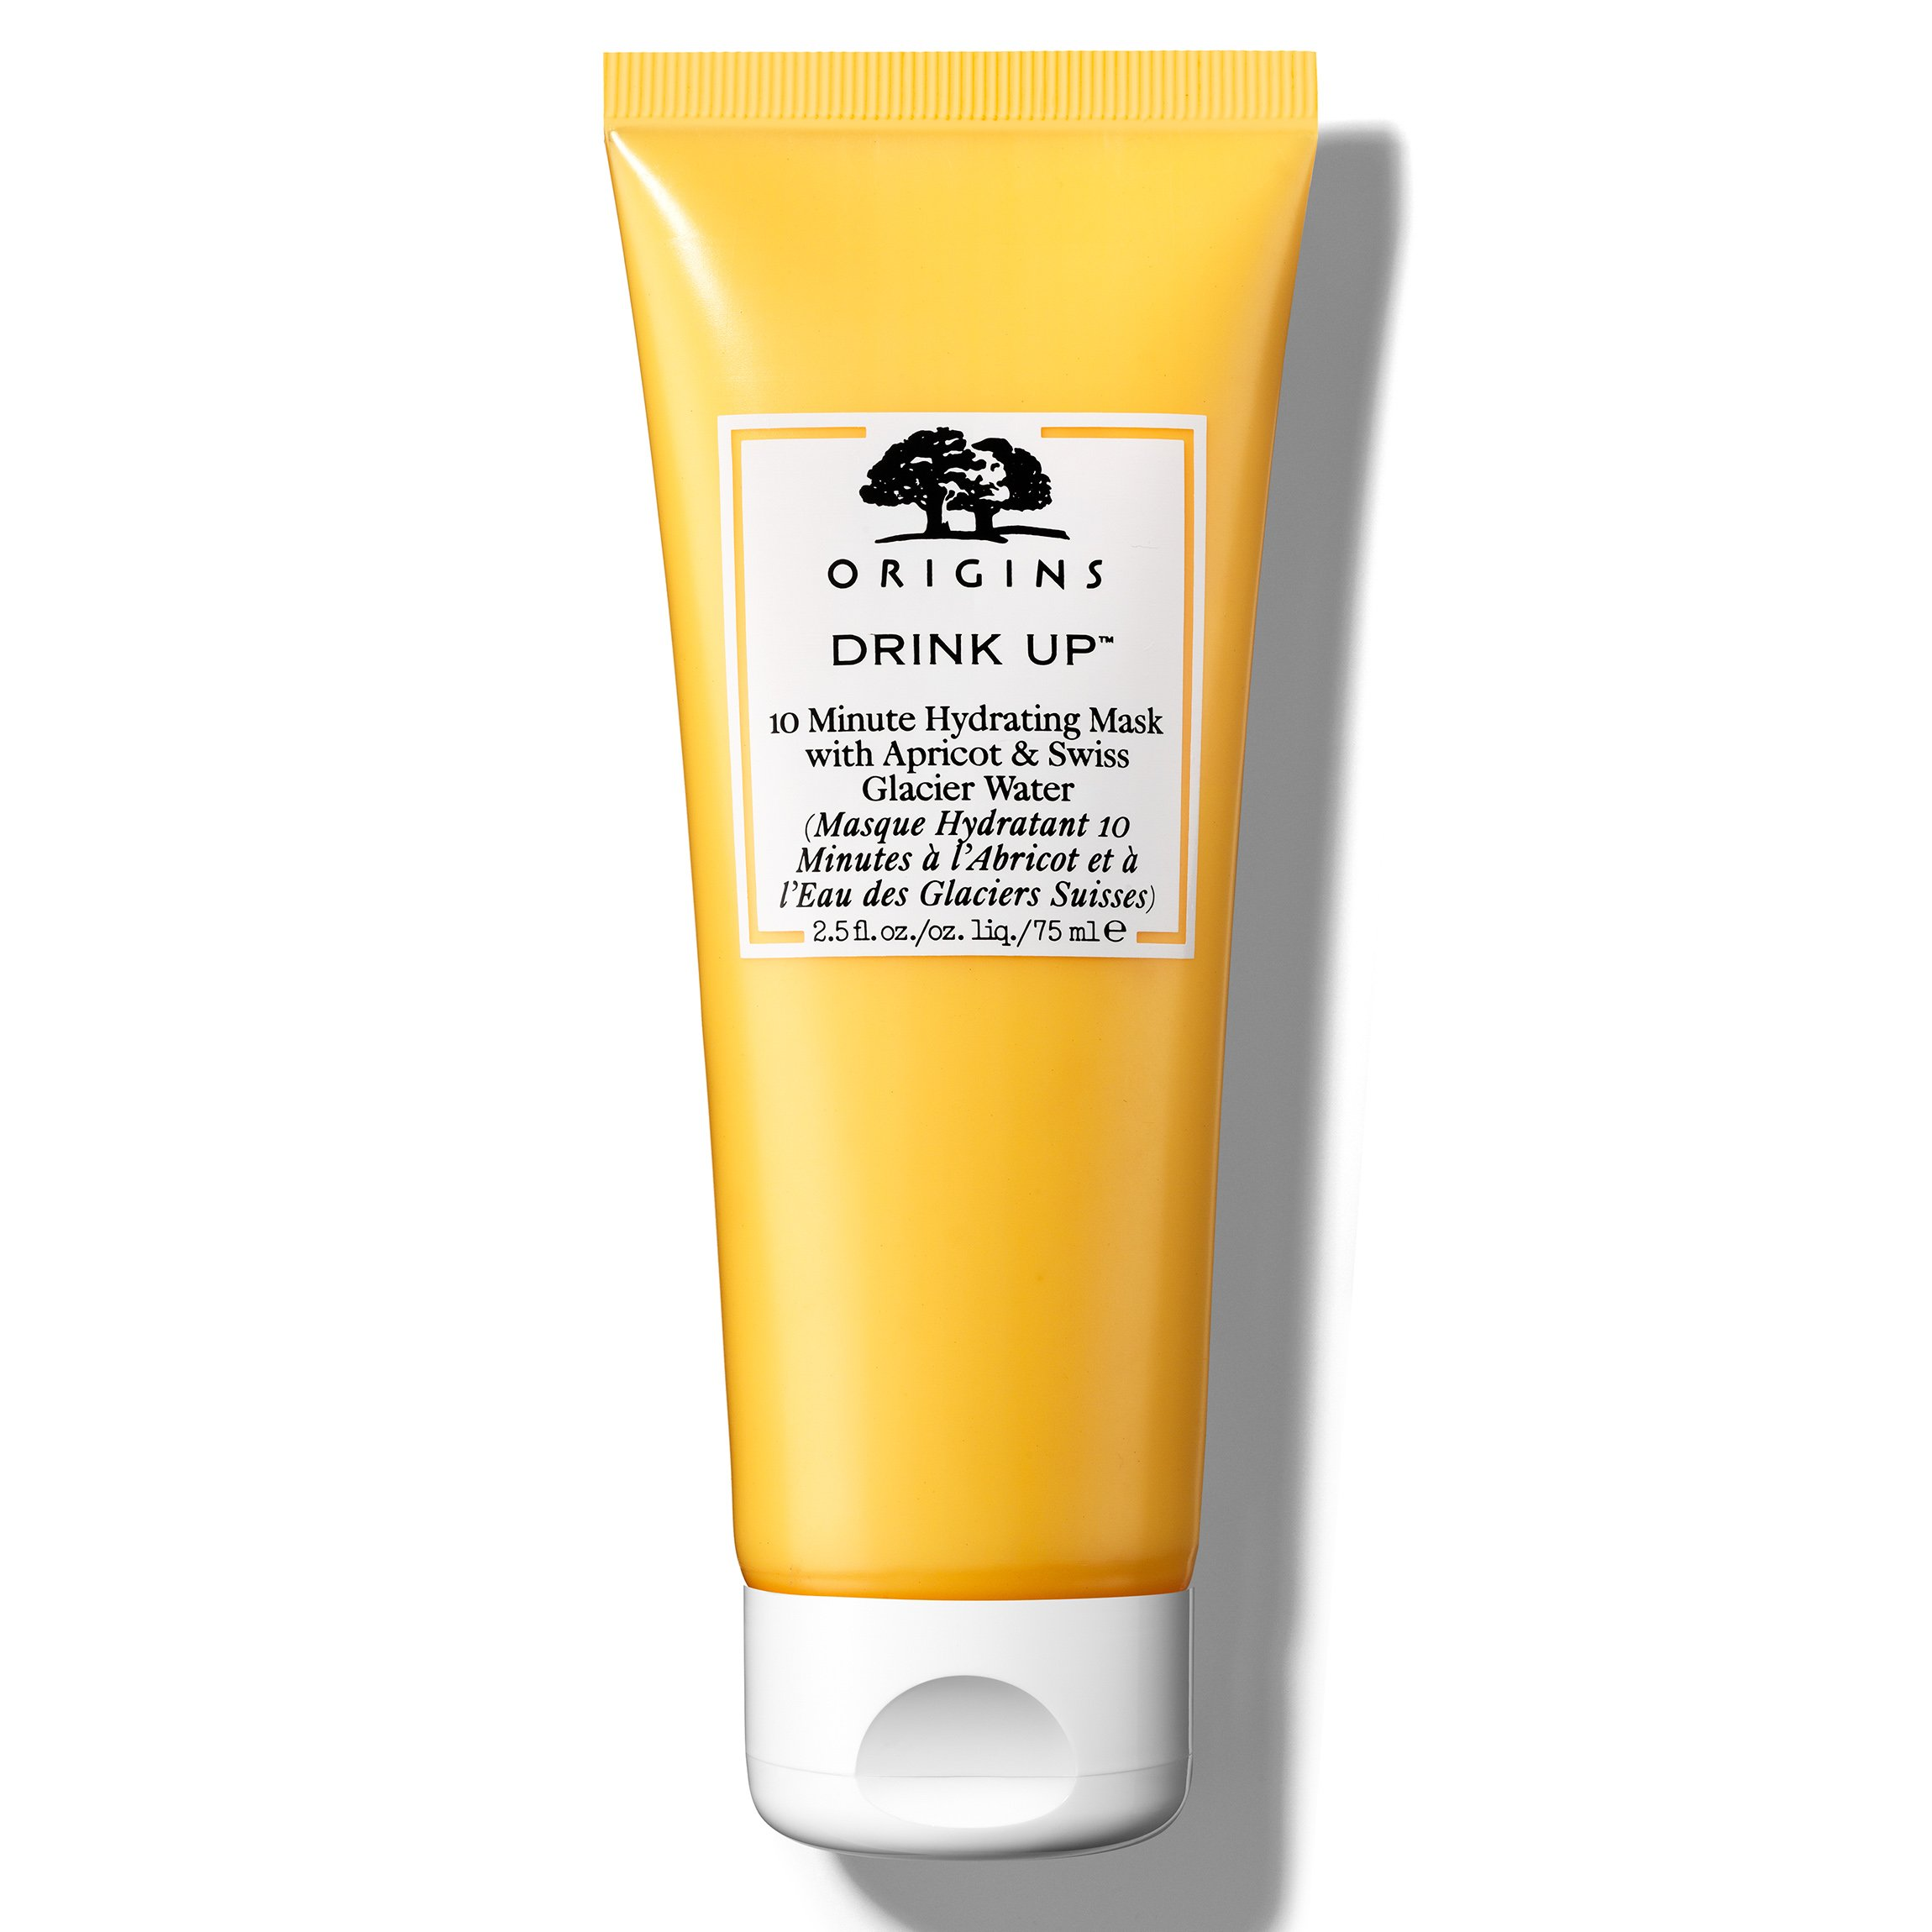 Origins Drink Up 10 Minute Hydrating Mask Ενυδατική Μάσκα 10 Λεπτών με Βερίκοκο 75ml